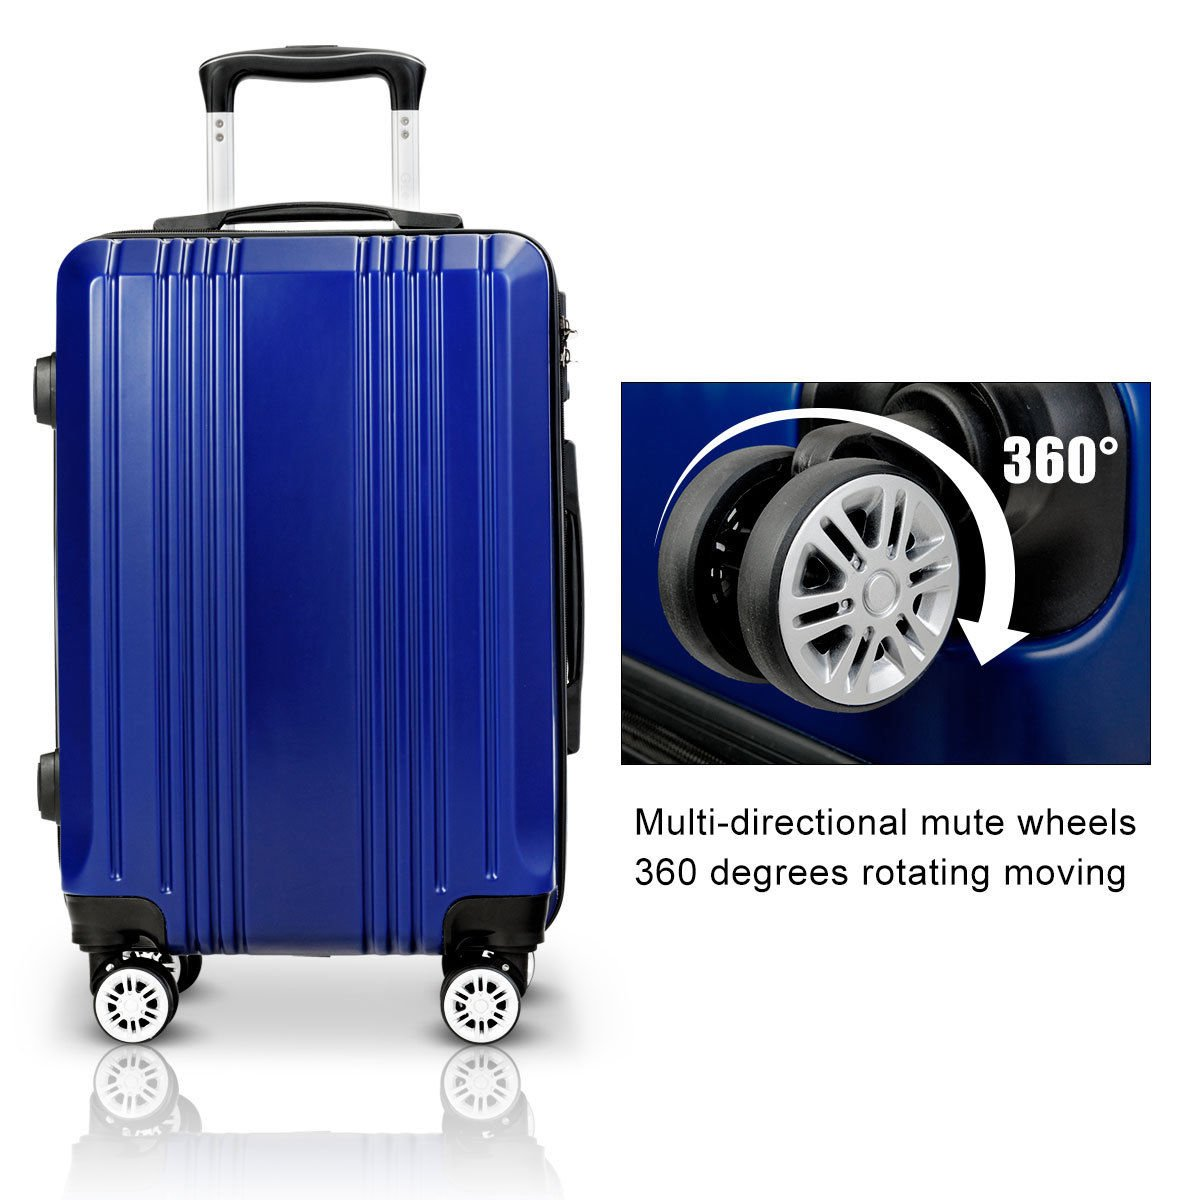 Navy Blue 3Pcs Trolley Case Set ABS Shell Travel Luggage size 20 24 28 w//Lock Spinner /& Multi-directional Wheels